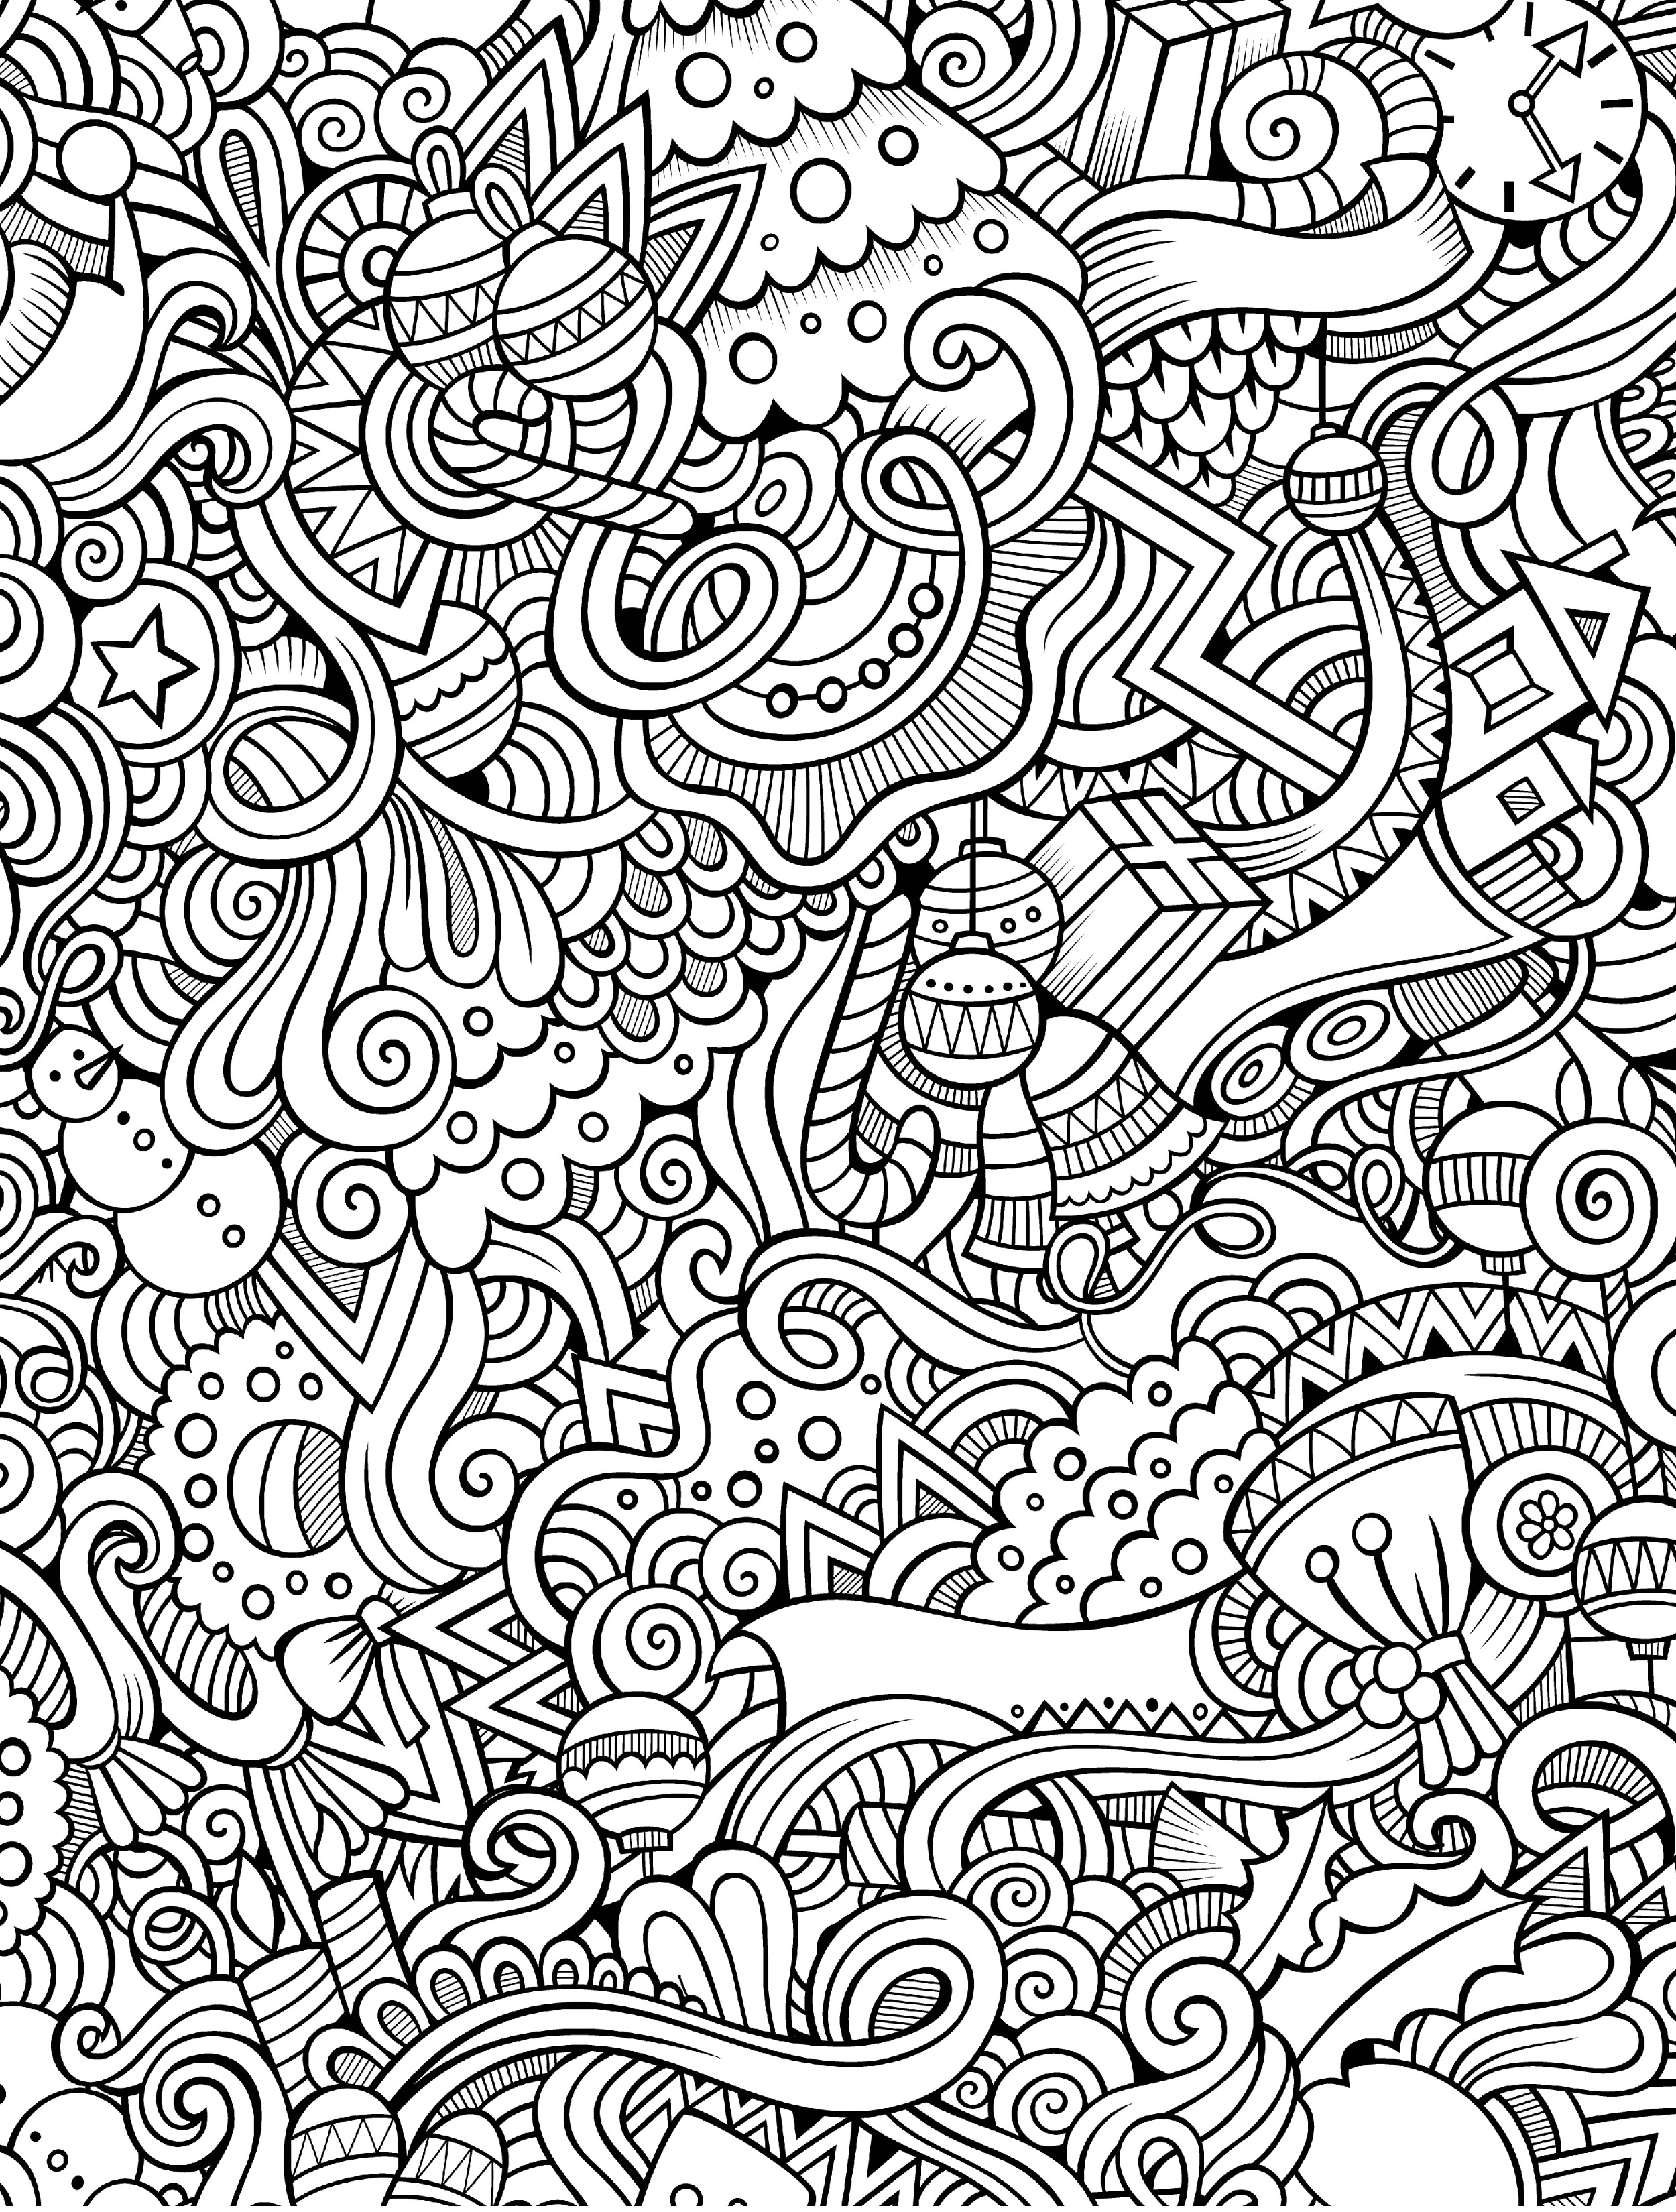 Realistic Coloring Pages For Adults At Getcolorings